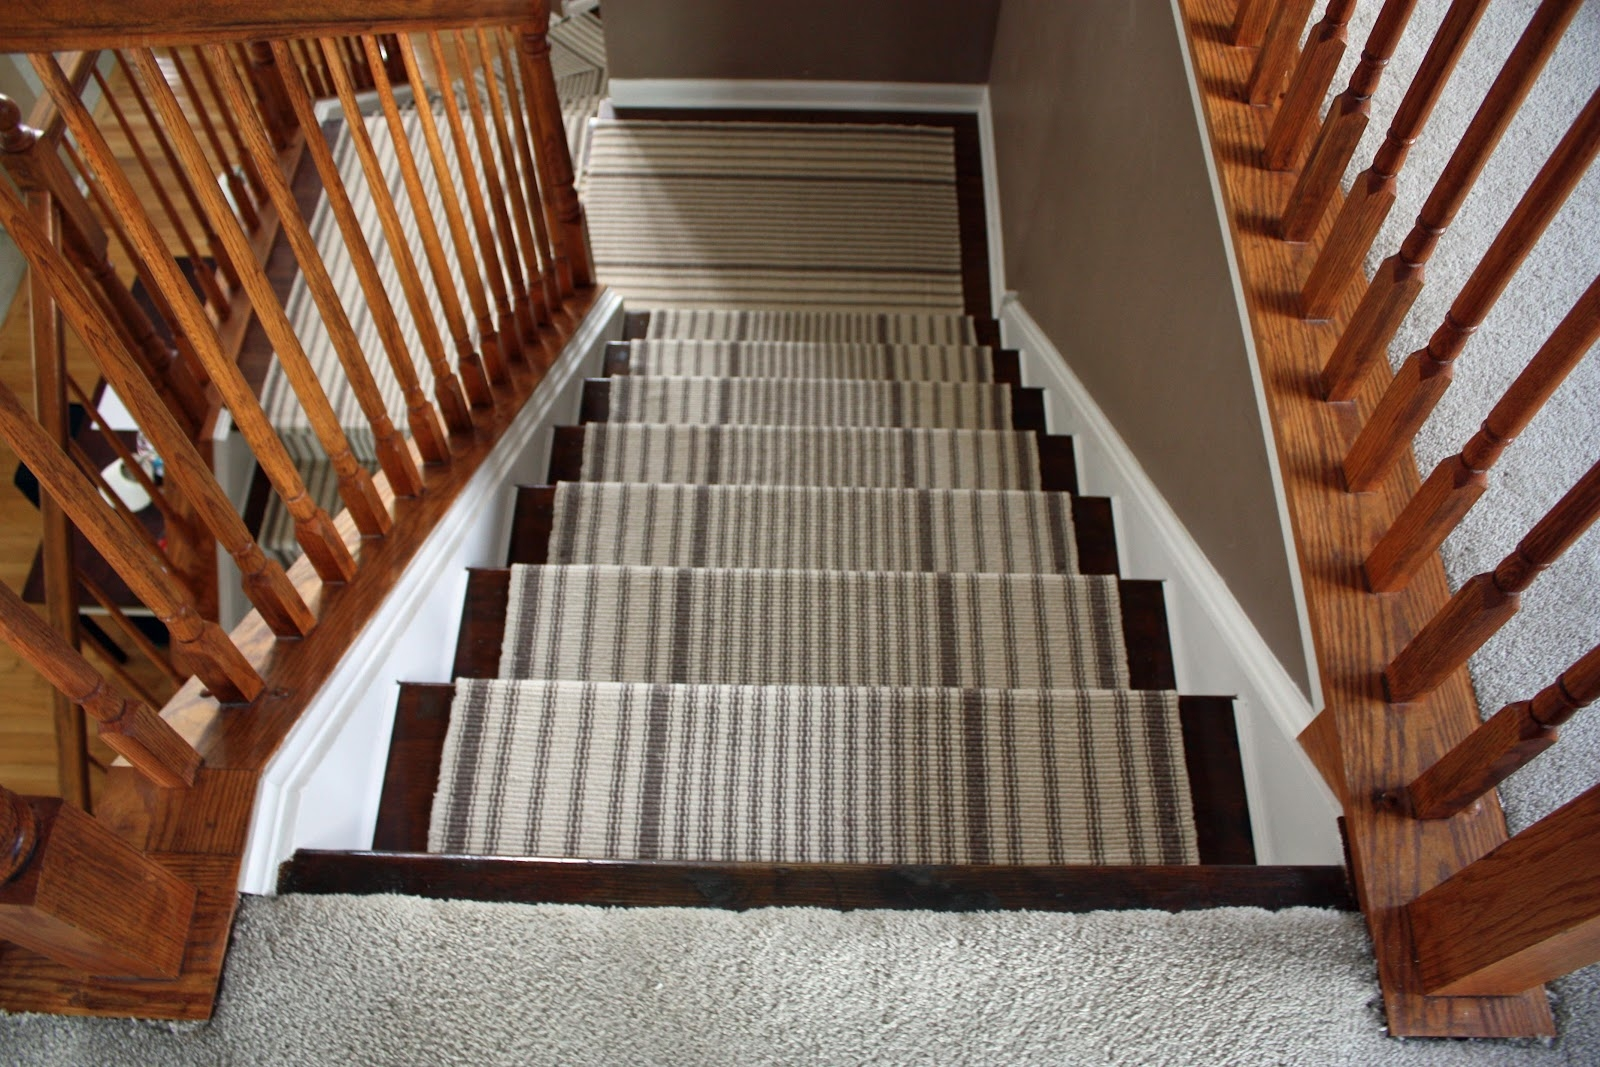 Carpet Runner For Stairs Over Carpet 20 Reasons To Buy | Buy Carpet For Stairs